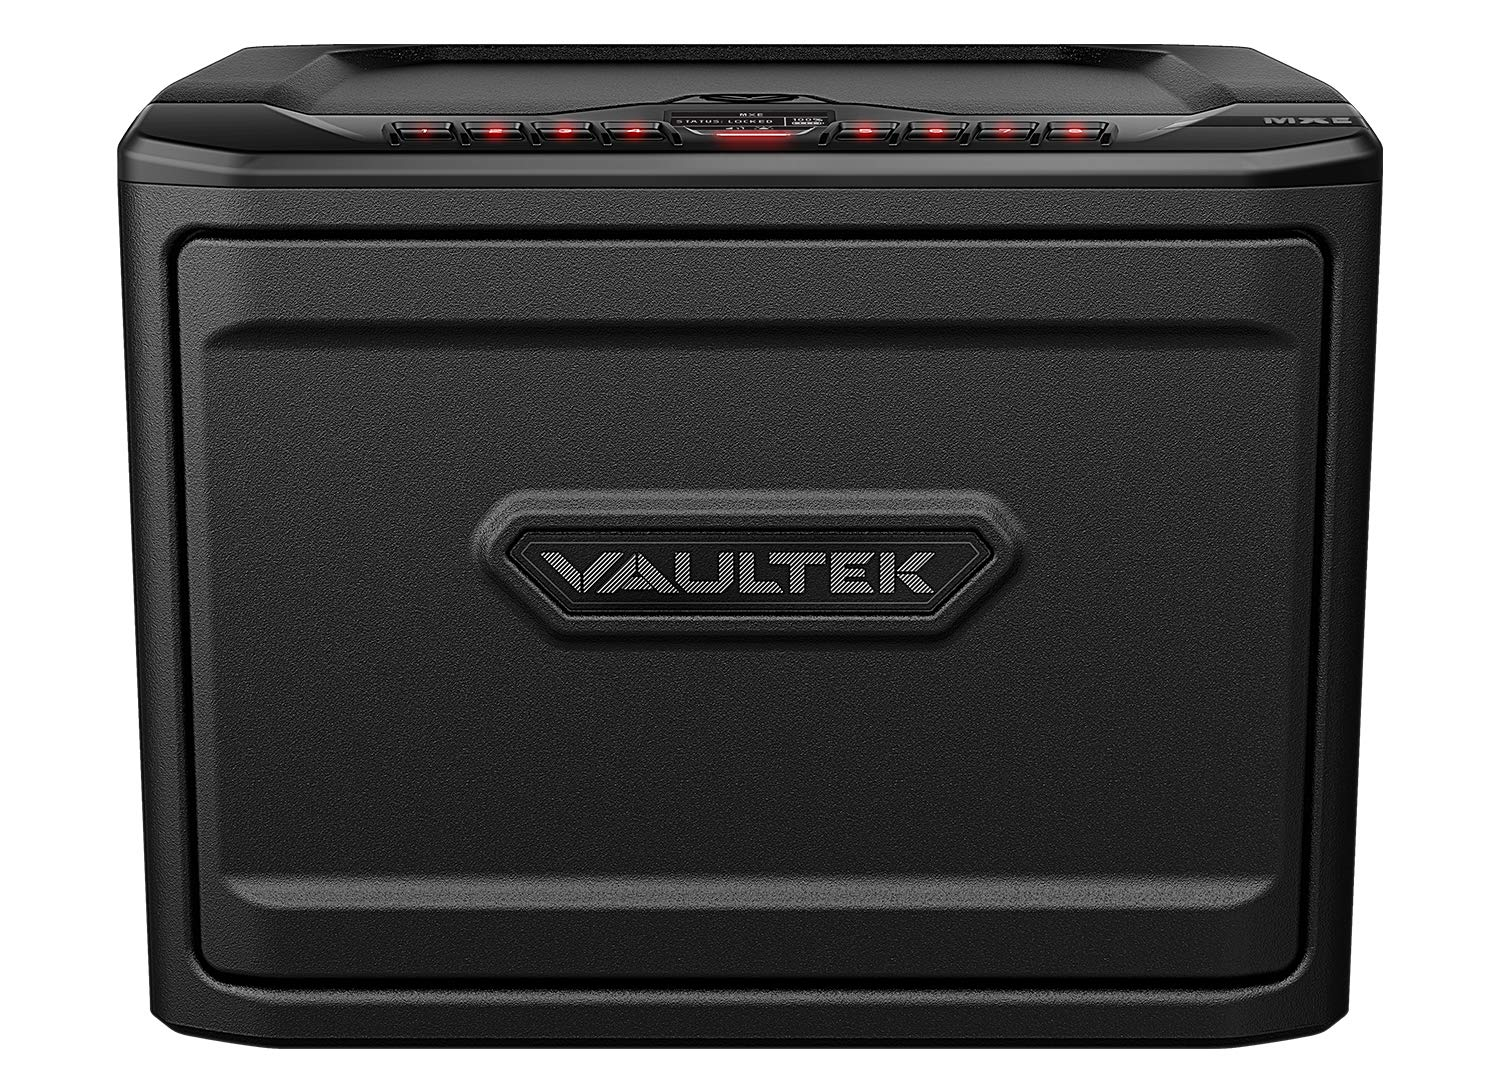 Vaultek Essential Series Quick Access Handgun Safe with Auto Open Lid Pistol Safe Rechargeable Lithium-ion Battery (Not Compatible with Smart Key) (MXE (High Capacity)) by Vaultek